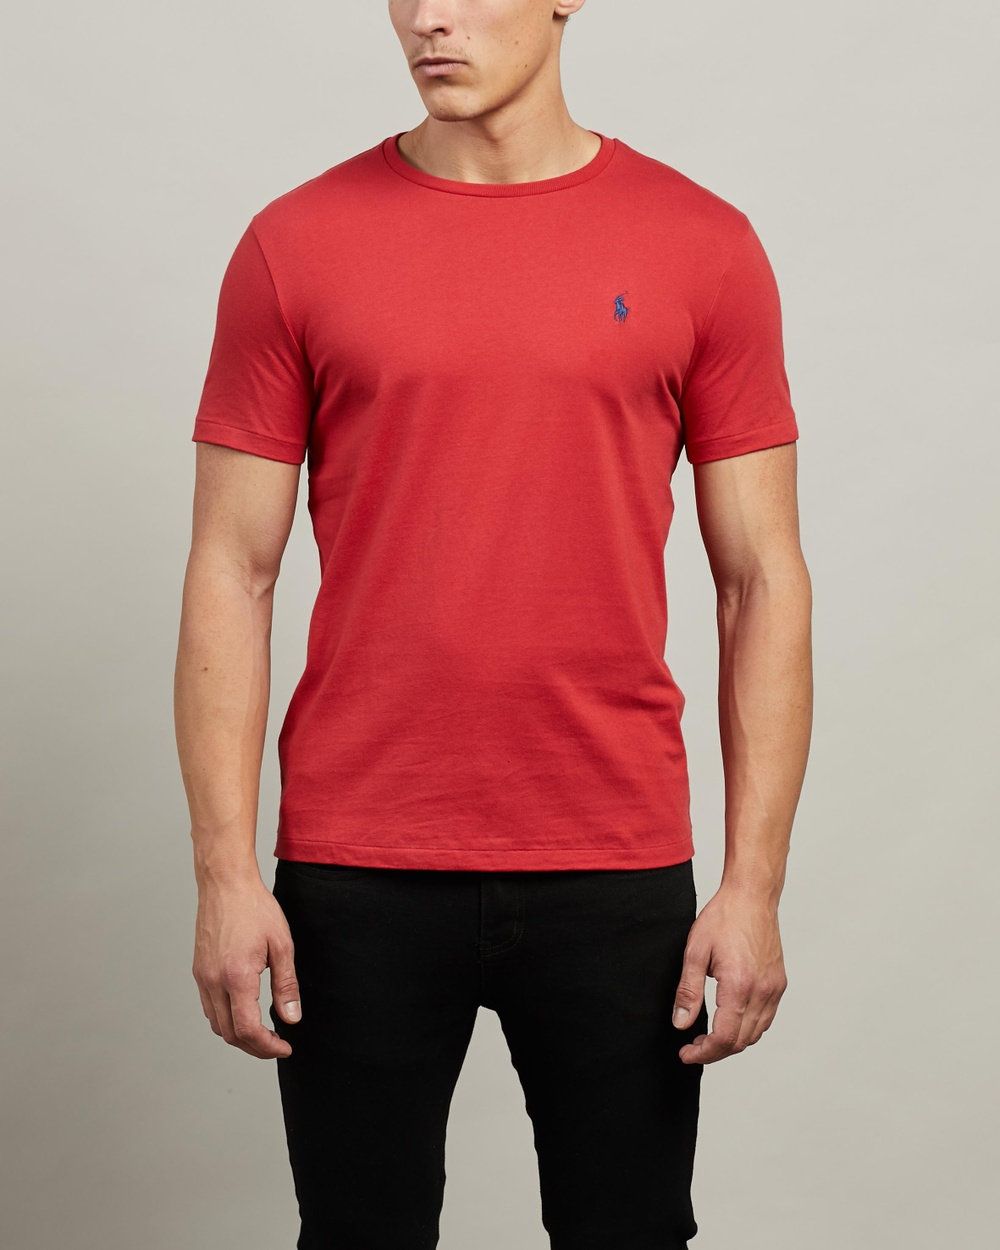 Polo Ralph Lauren - ICONIC EXCLUSIVE   Short Sleeve T Shirt - T-Shirts & Singlets (Evening Post Red) ICONIC EXCLUSIVE - Short Sleeve T-Shirt